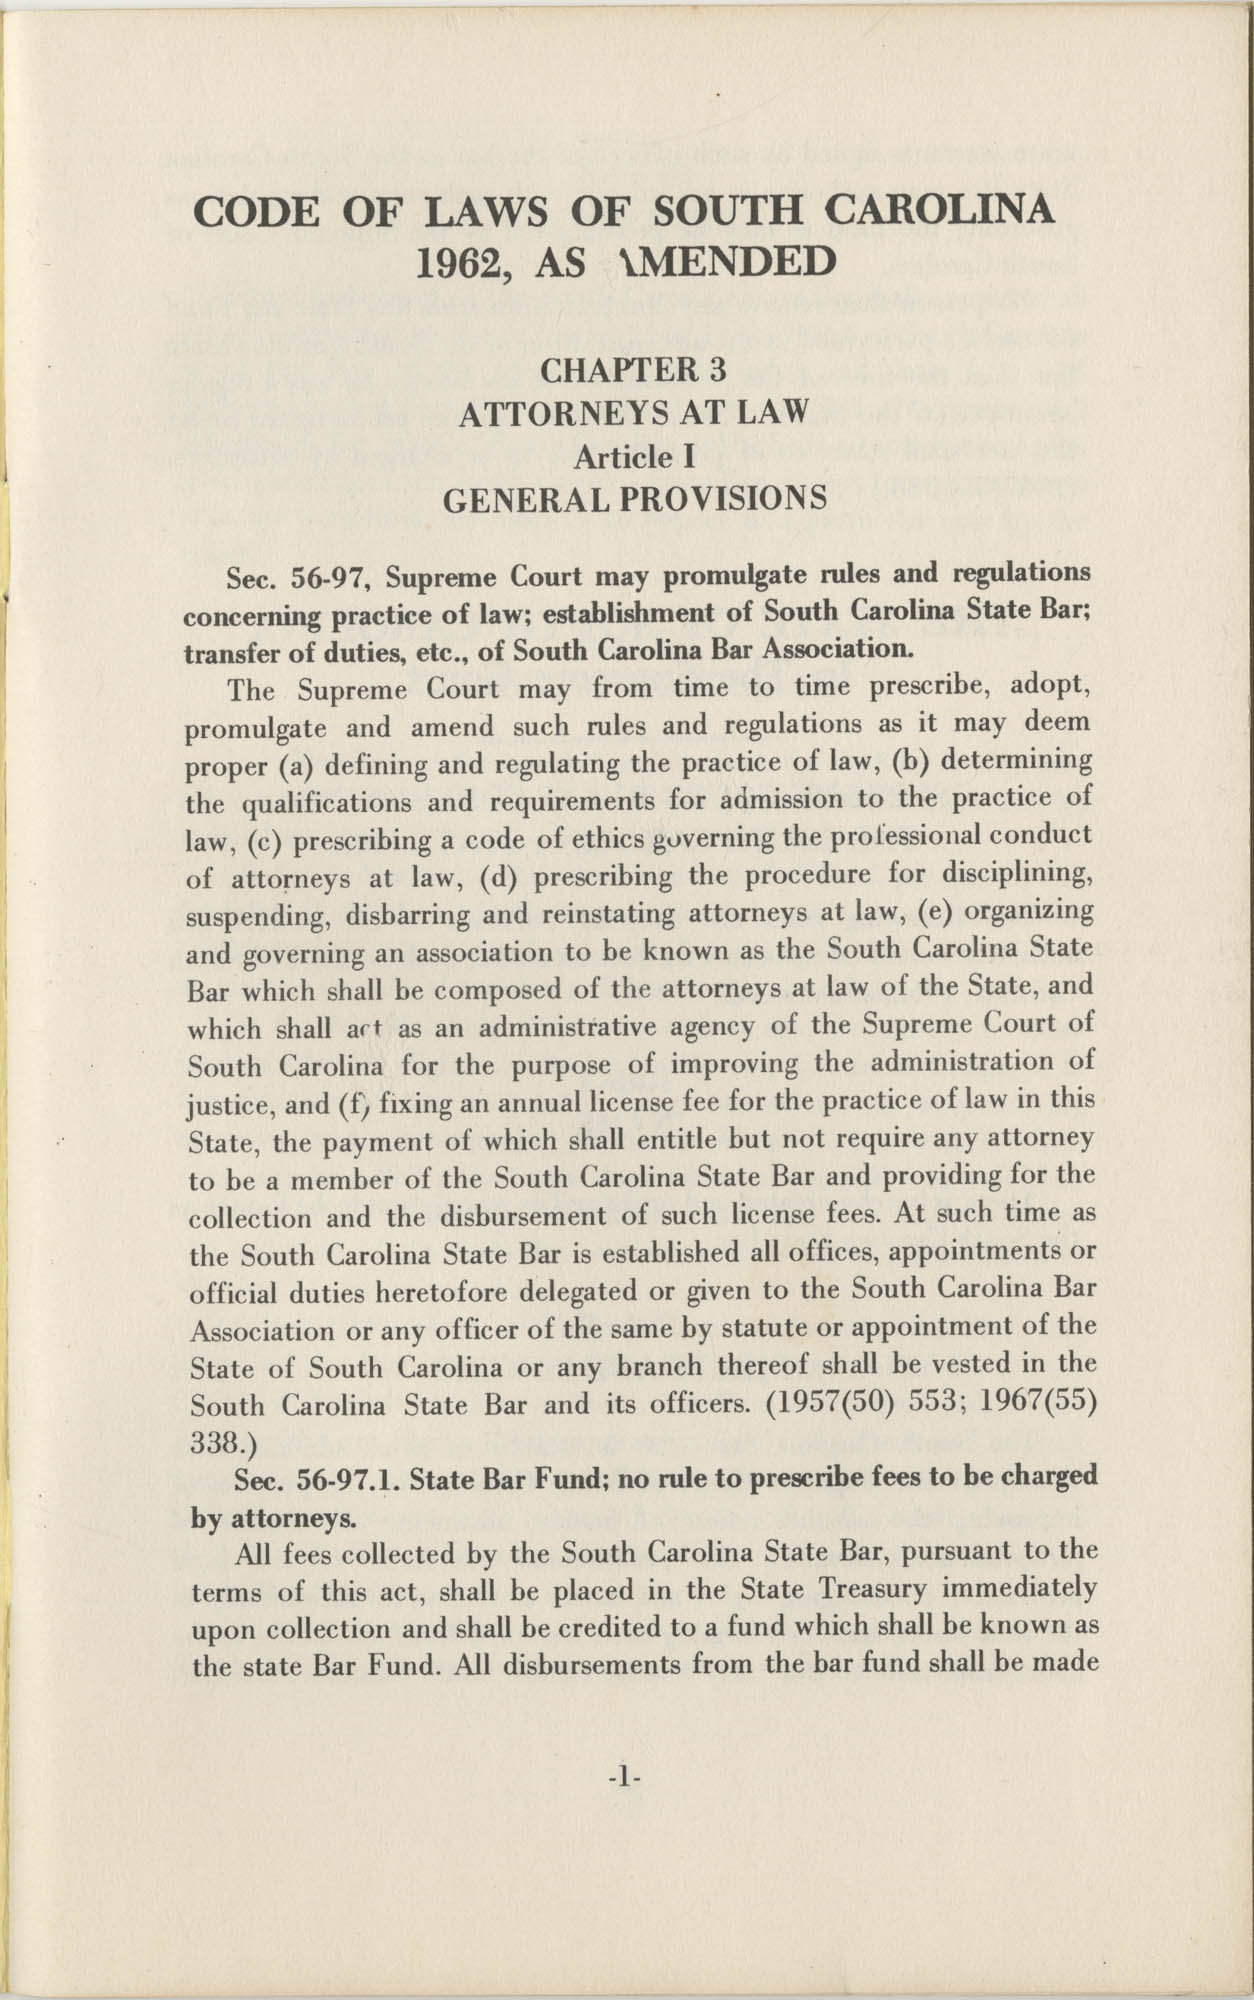 South Carolina State Bar, Statute Supreme Court Rules, By-Laws, 1974, Page 1